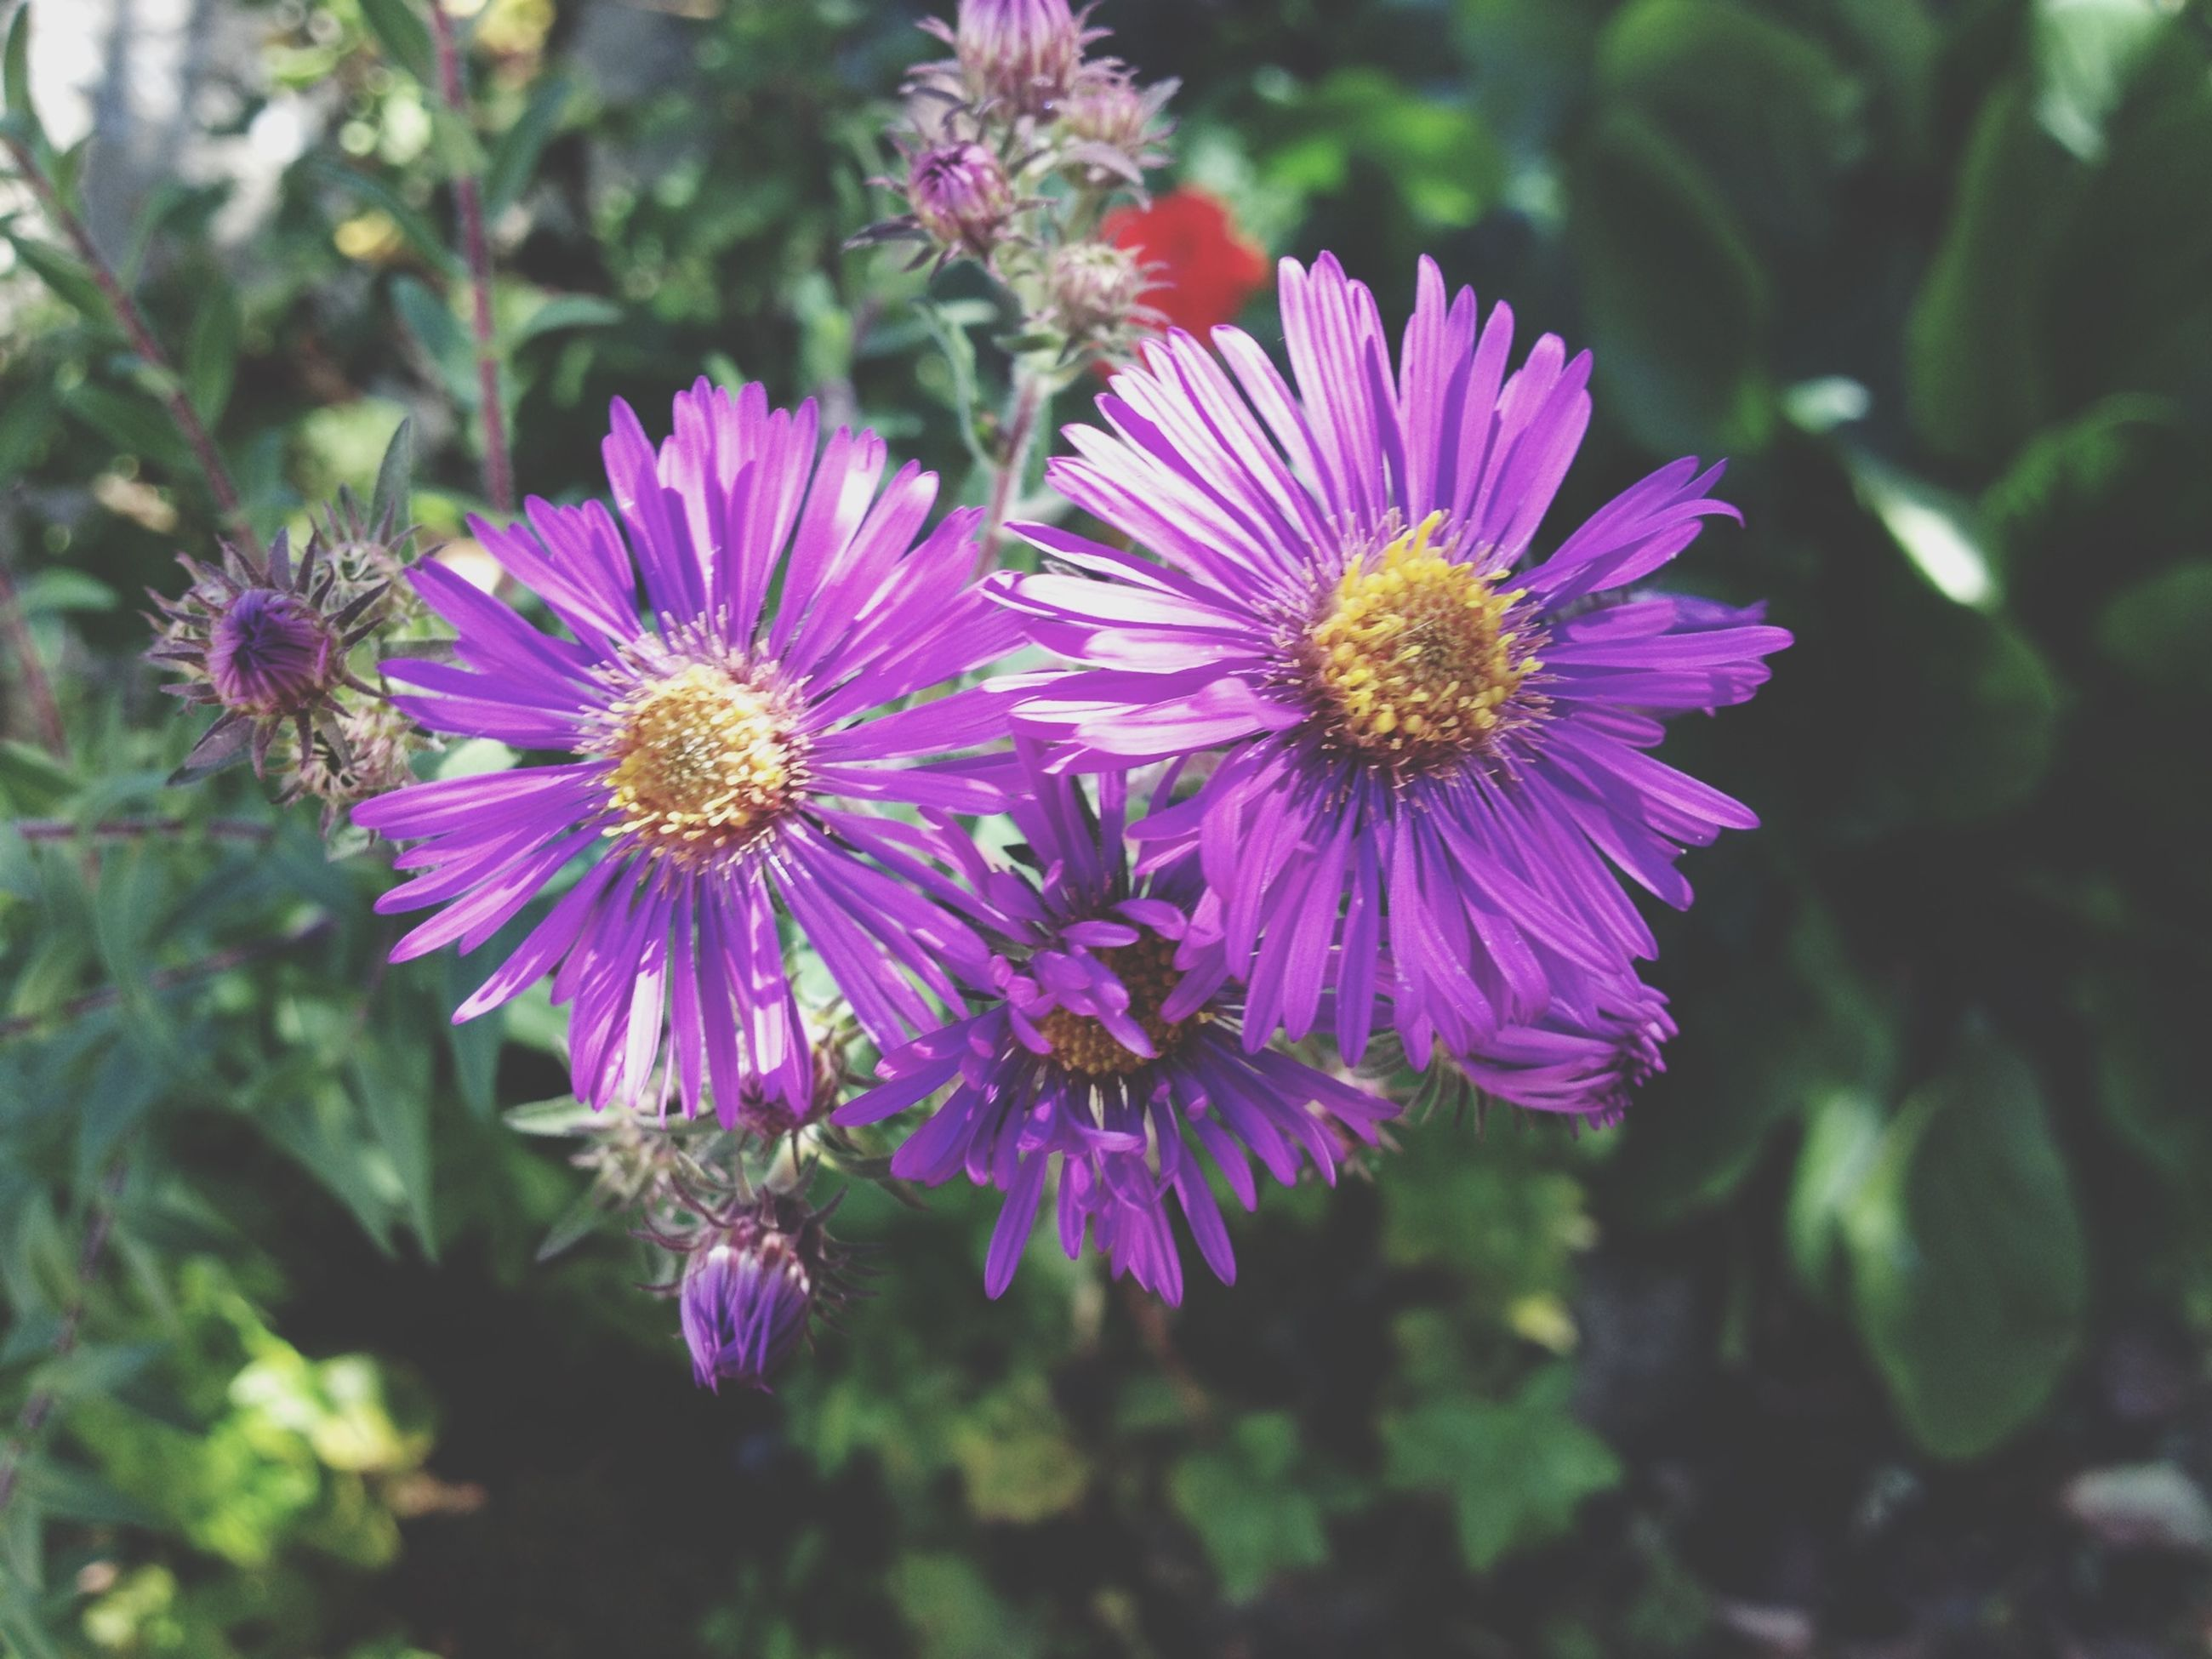 flower, freshness, petal, fragility, flower head, growth, beauty in nature, purple, close-up, focus on foreground, pollen, blooming, nature, plant, pink color, in bloom, high angle view, day, no people, outdoors